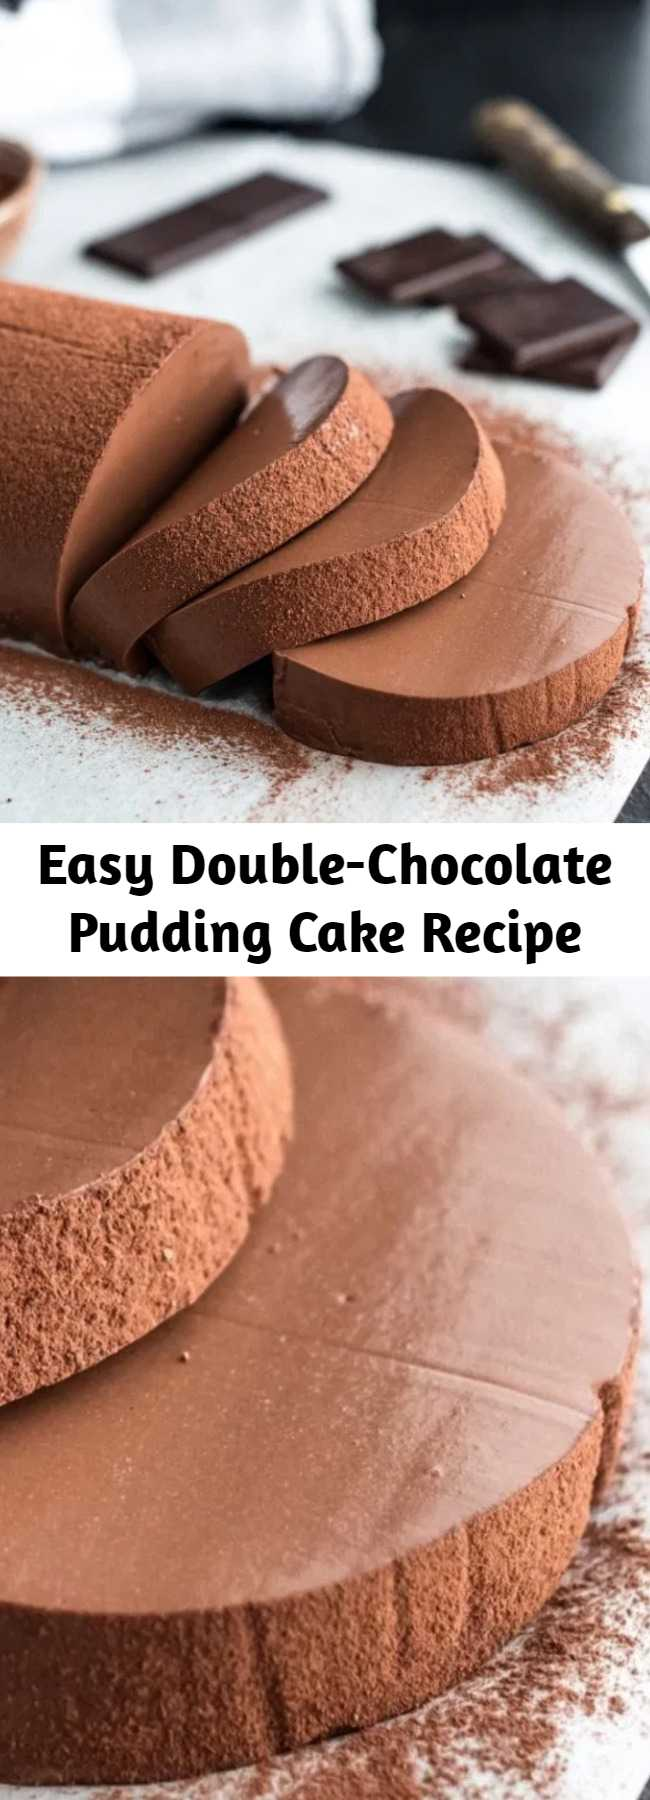 Easy Double-Chocolate Pudding Cake Recipe - Are you looking for a super creamy and chocolaty dessert that everyone will fall in love with? You do?! Then this Double-Chocolate Pudding Cake is perfect for you! It's super easy to prepare and you only need a few ingredients and little time to make it. Btw this recipe is also completely dairy & gluten free!